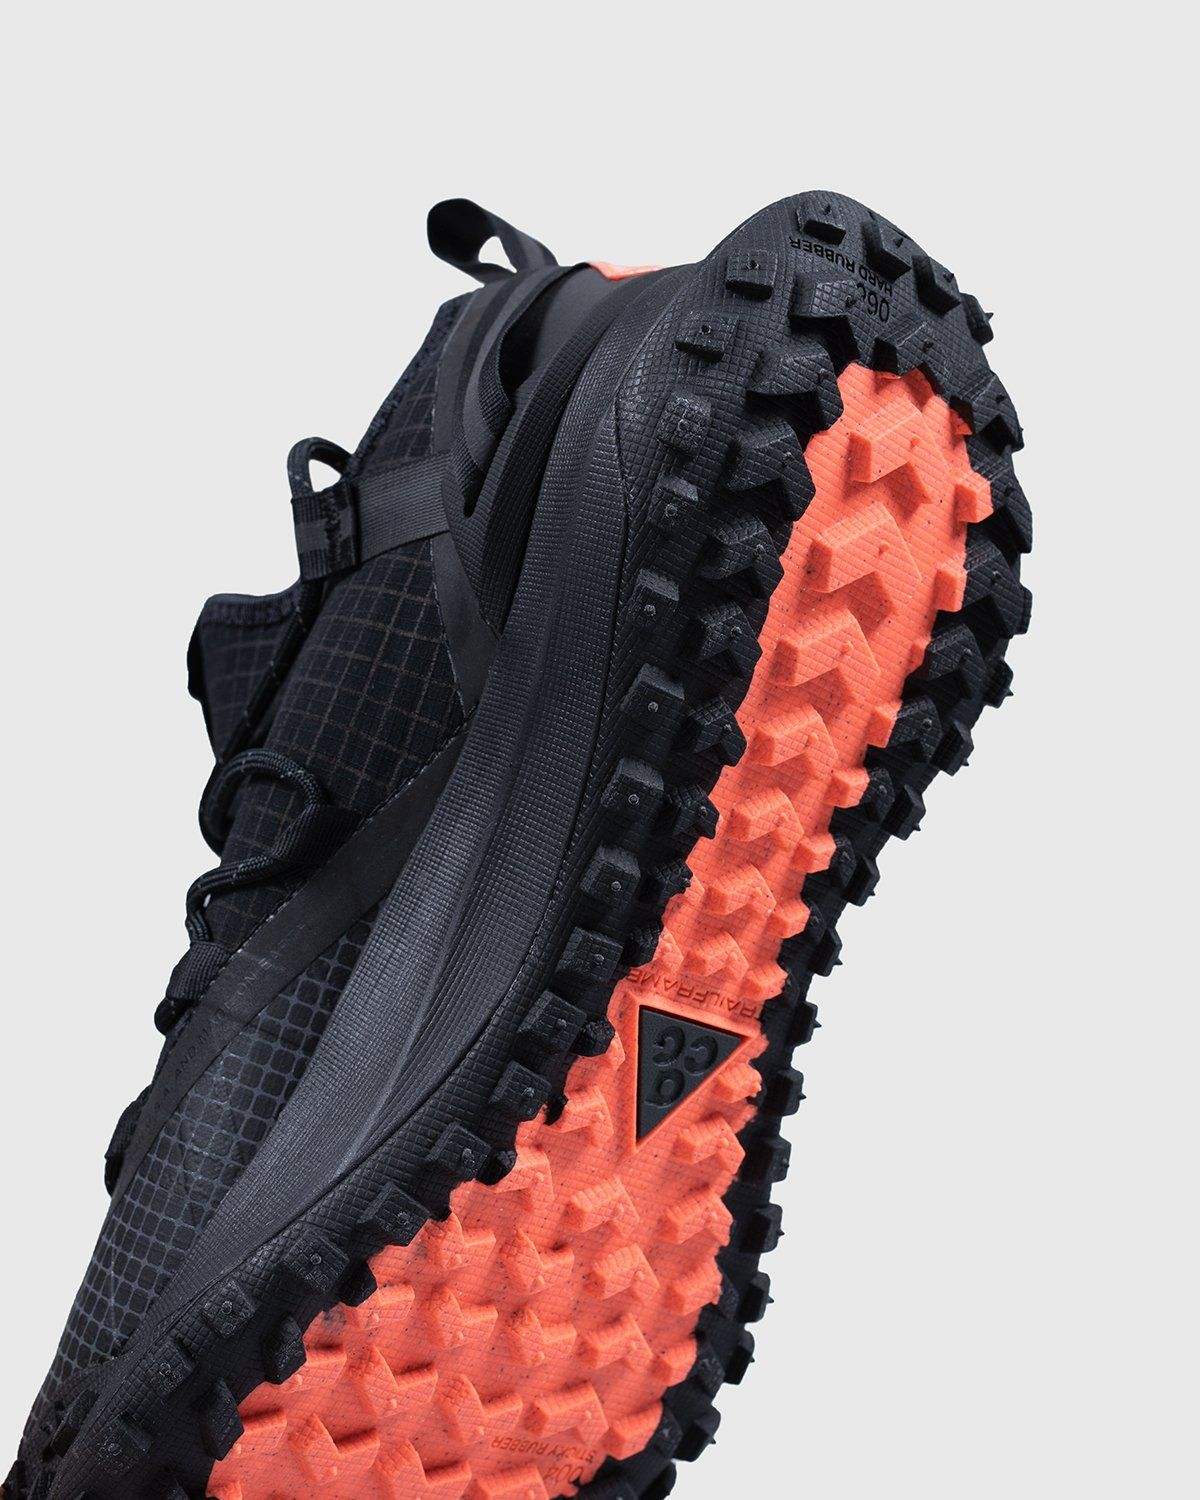 NIKE ACG - ACG MOUNTAIN FLY LOW ANTHRACITE - Image 5